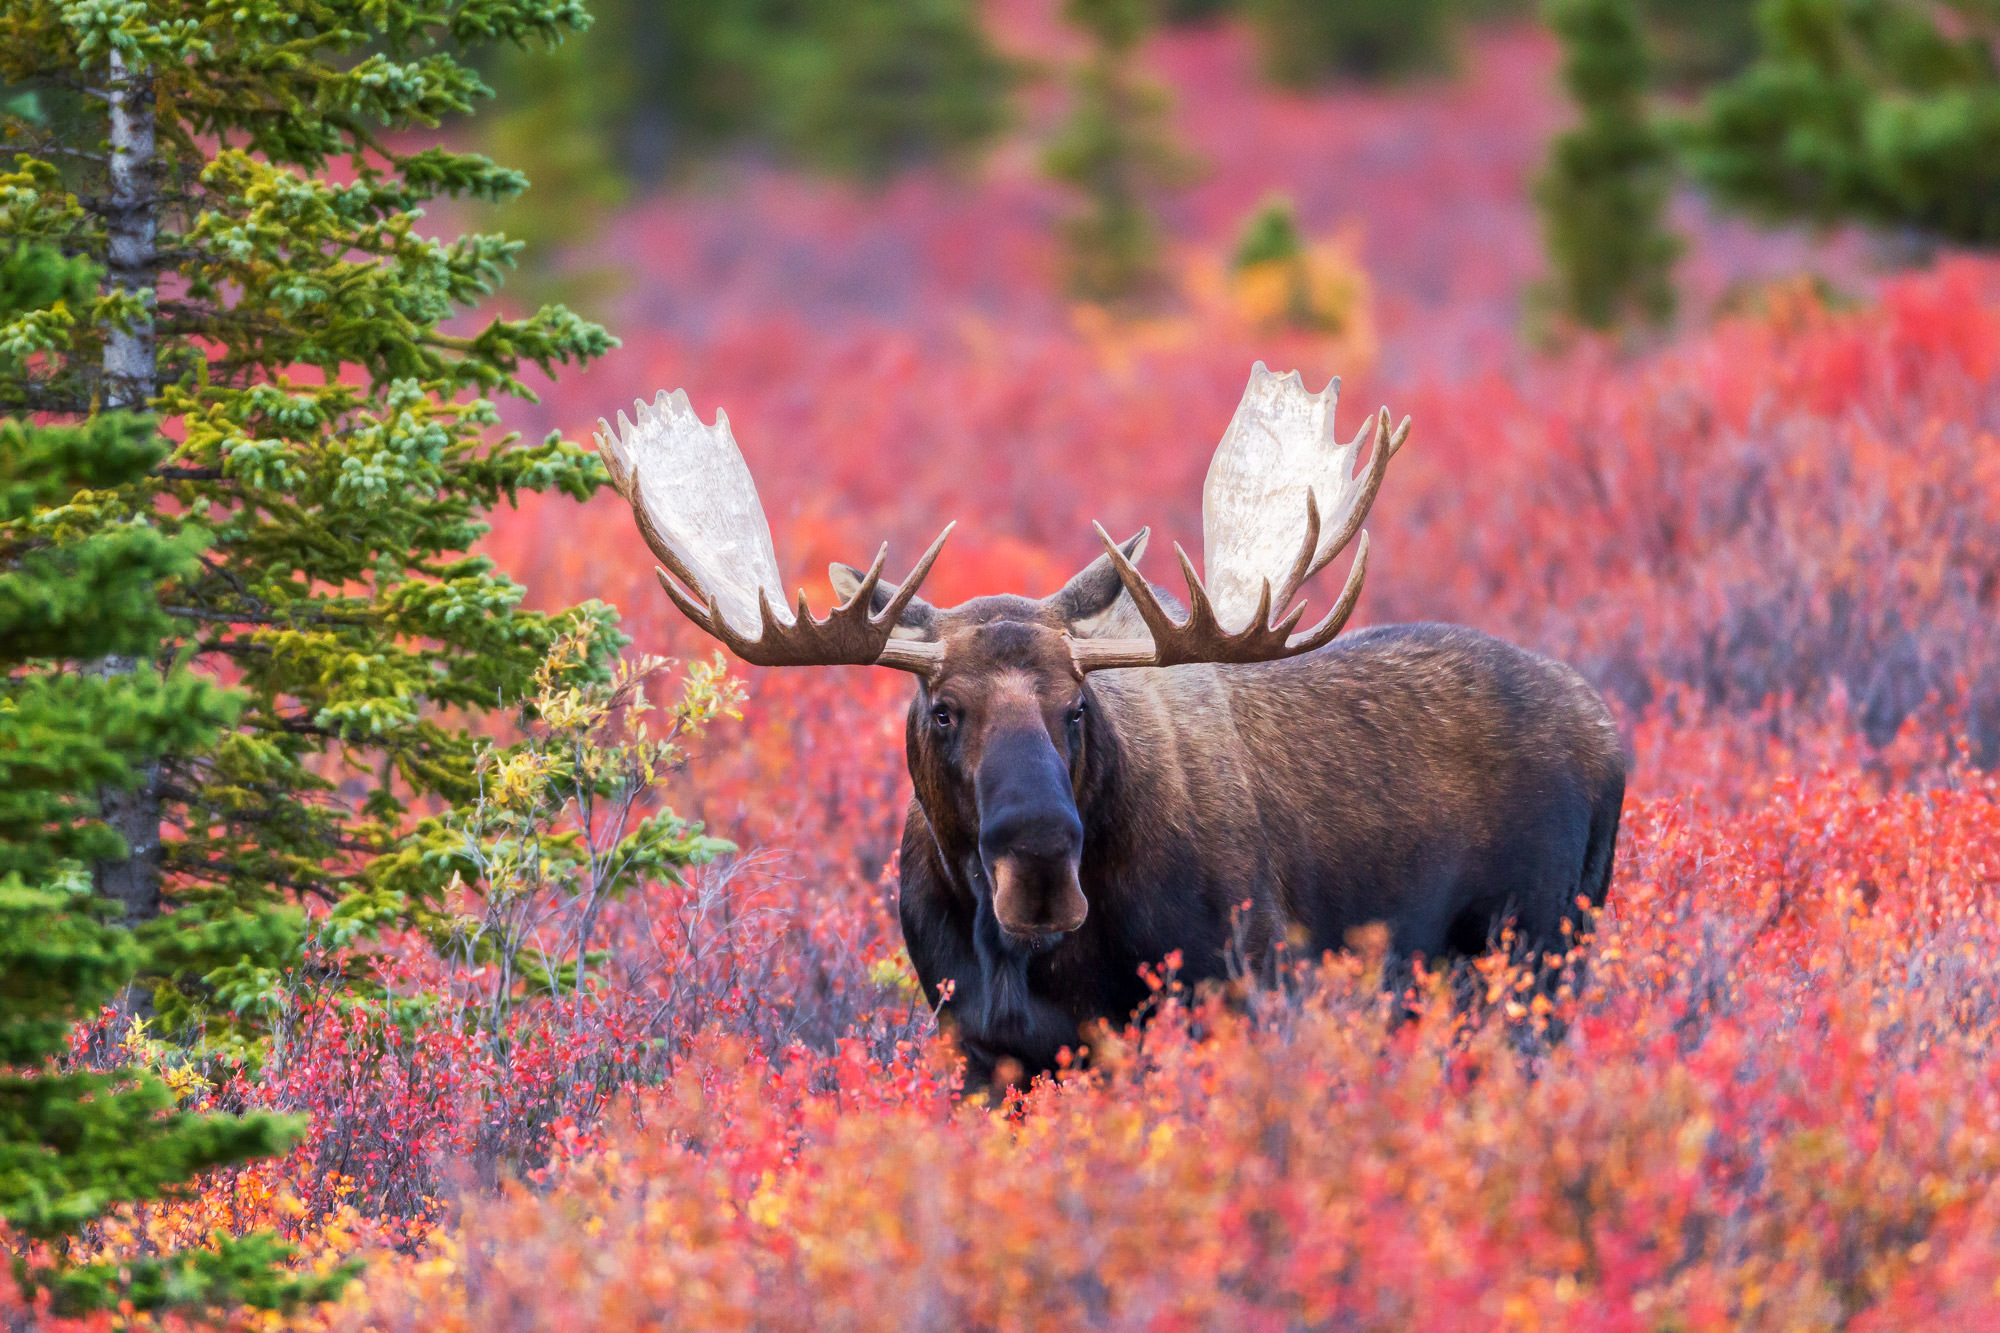 Moose, Bull Moose, Alaska, Denali, limited edition, photograph, fine art, wildlife, photo